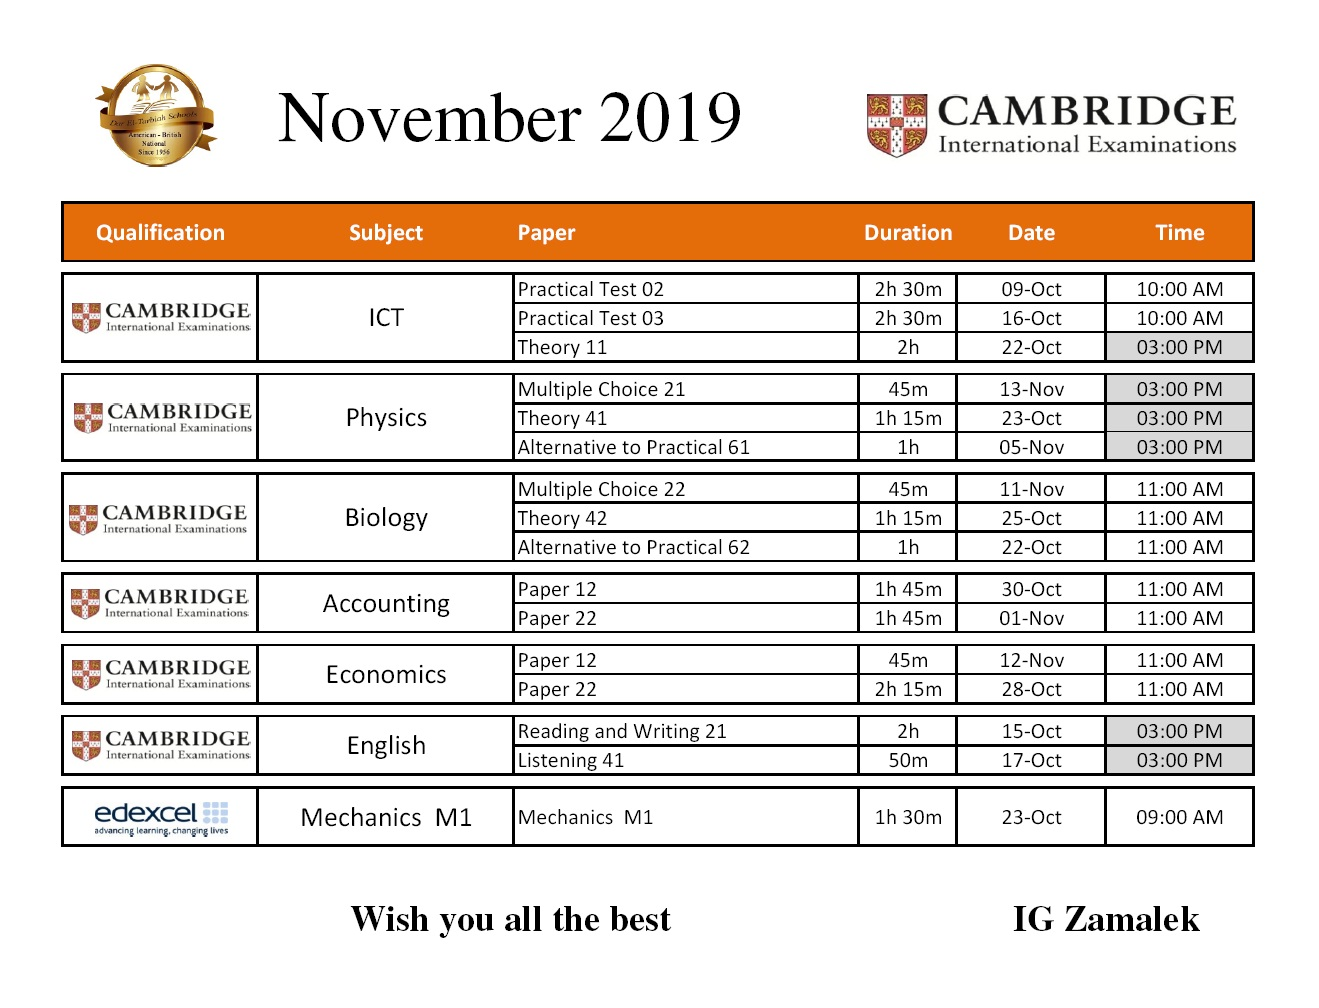 IG Zamalek - November 2019 Exams Timetable